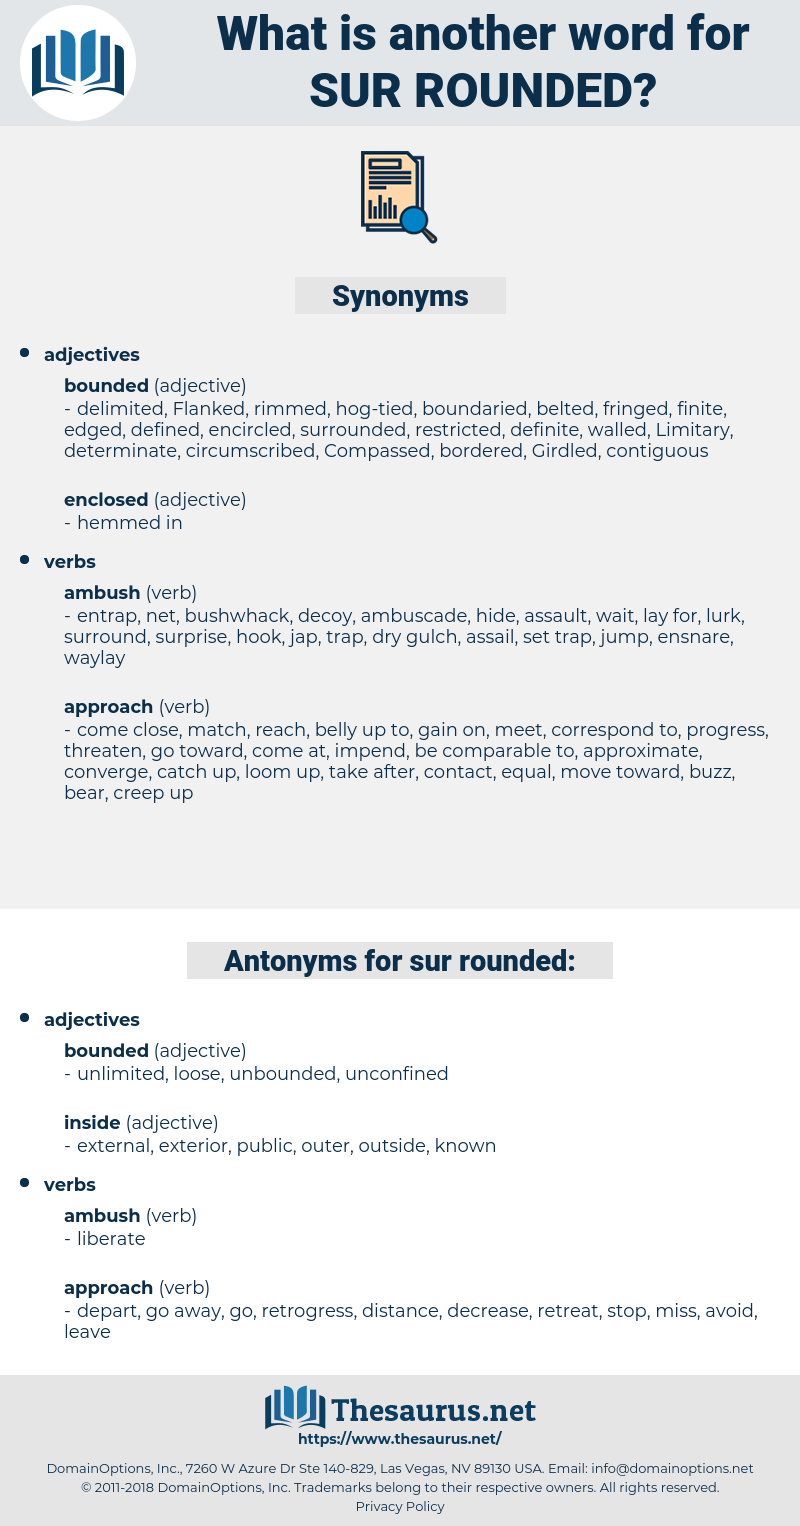 sur-rounded, synonym sur-rounded, another word for sur-rounded, words like sur-rounded, thesaurus sur-rounded